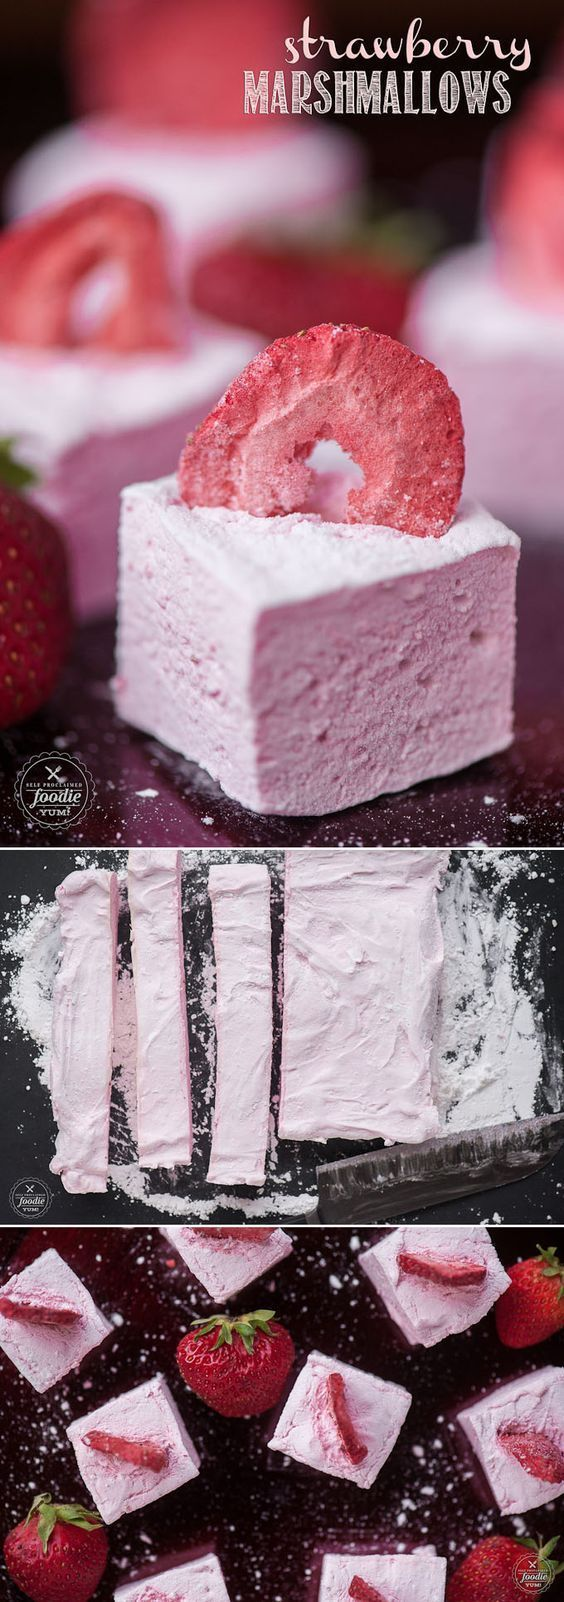 Homemade marshmallows are a real treat, and these Strawberry Marshmallows made with fresh strawberry puree take them to a whole new level! #marshmallow